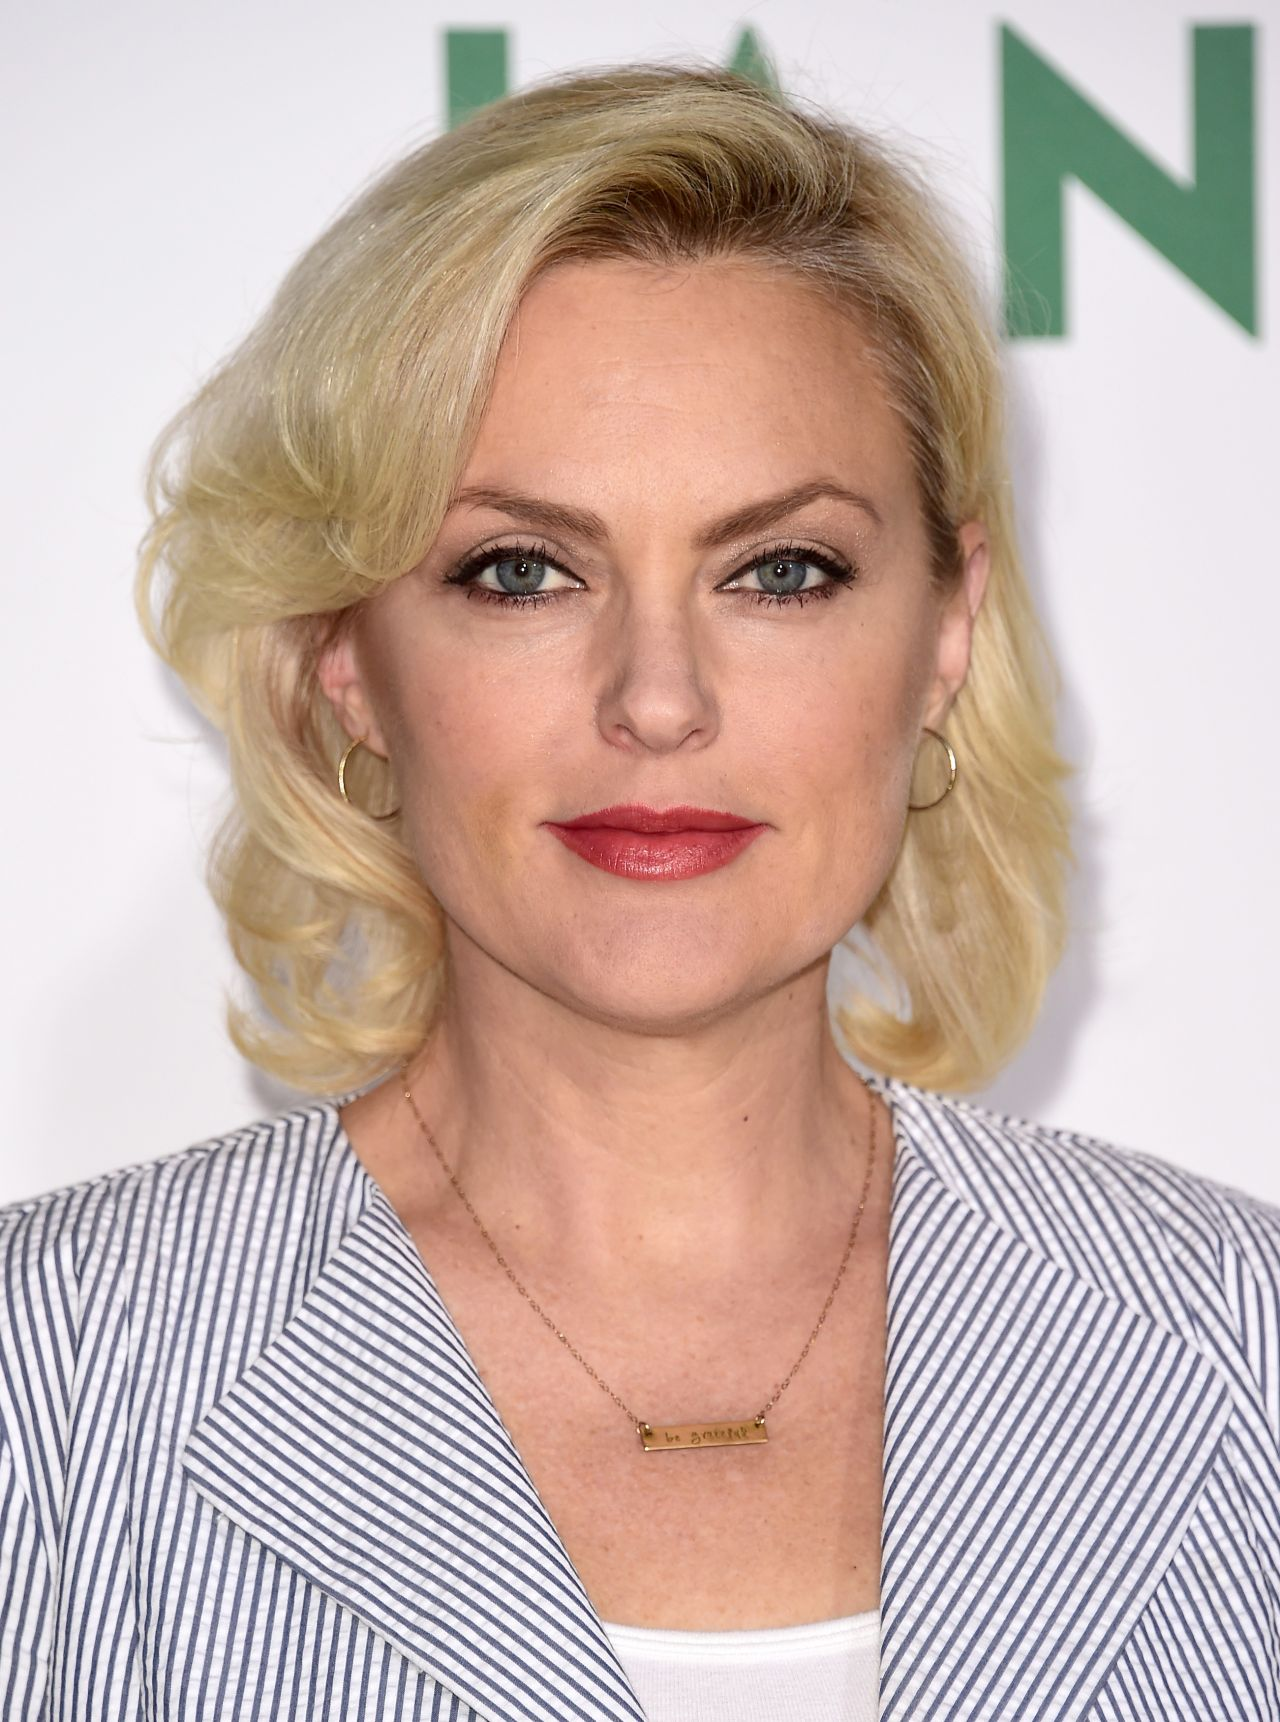 Fotos Elaine Hendrix nude (47 photos), Sexy, Is a cute, Selfie, see through 2020